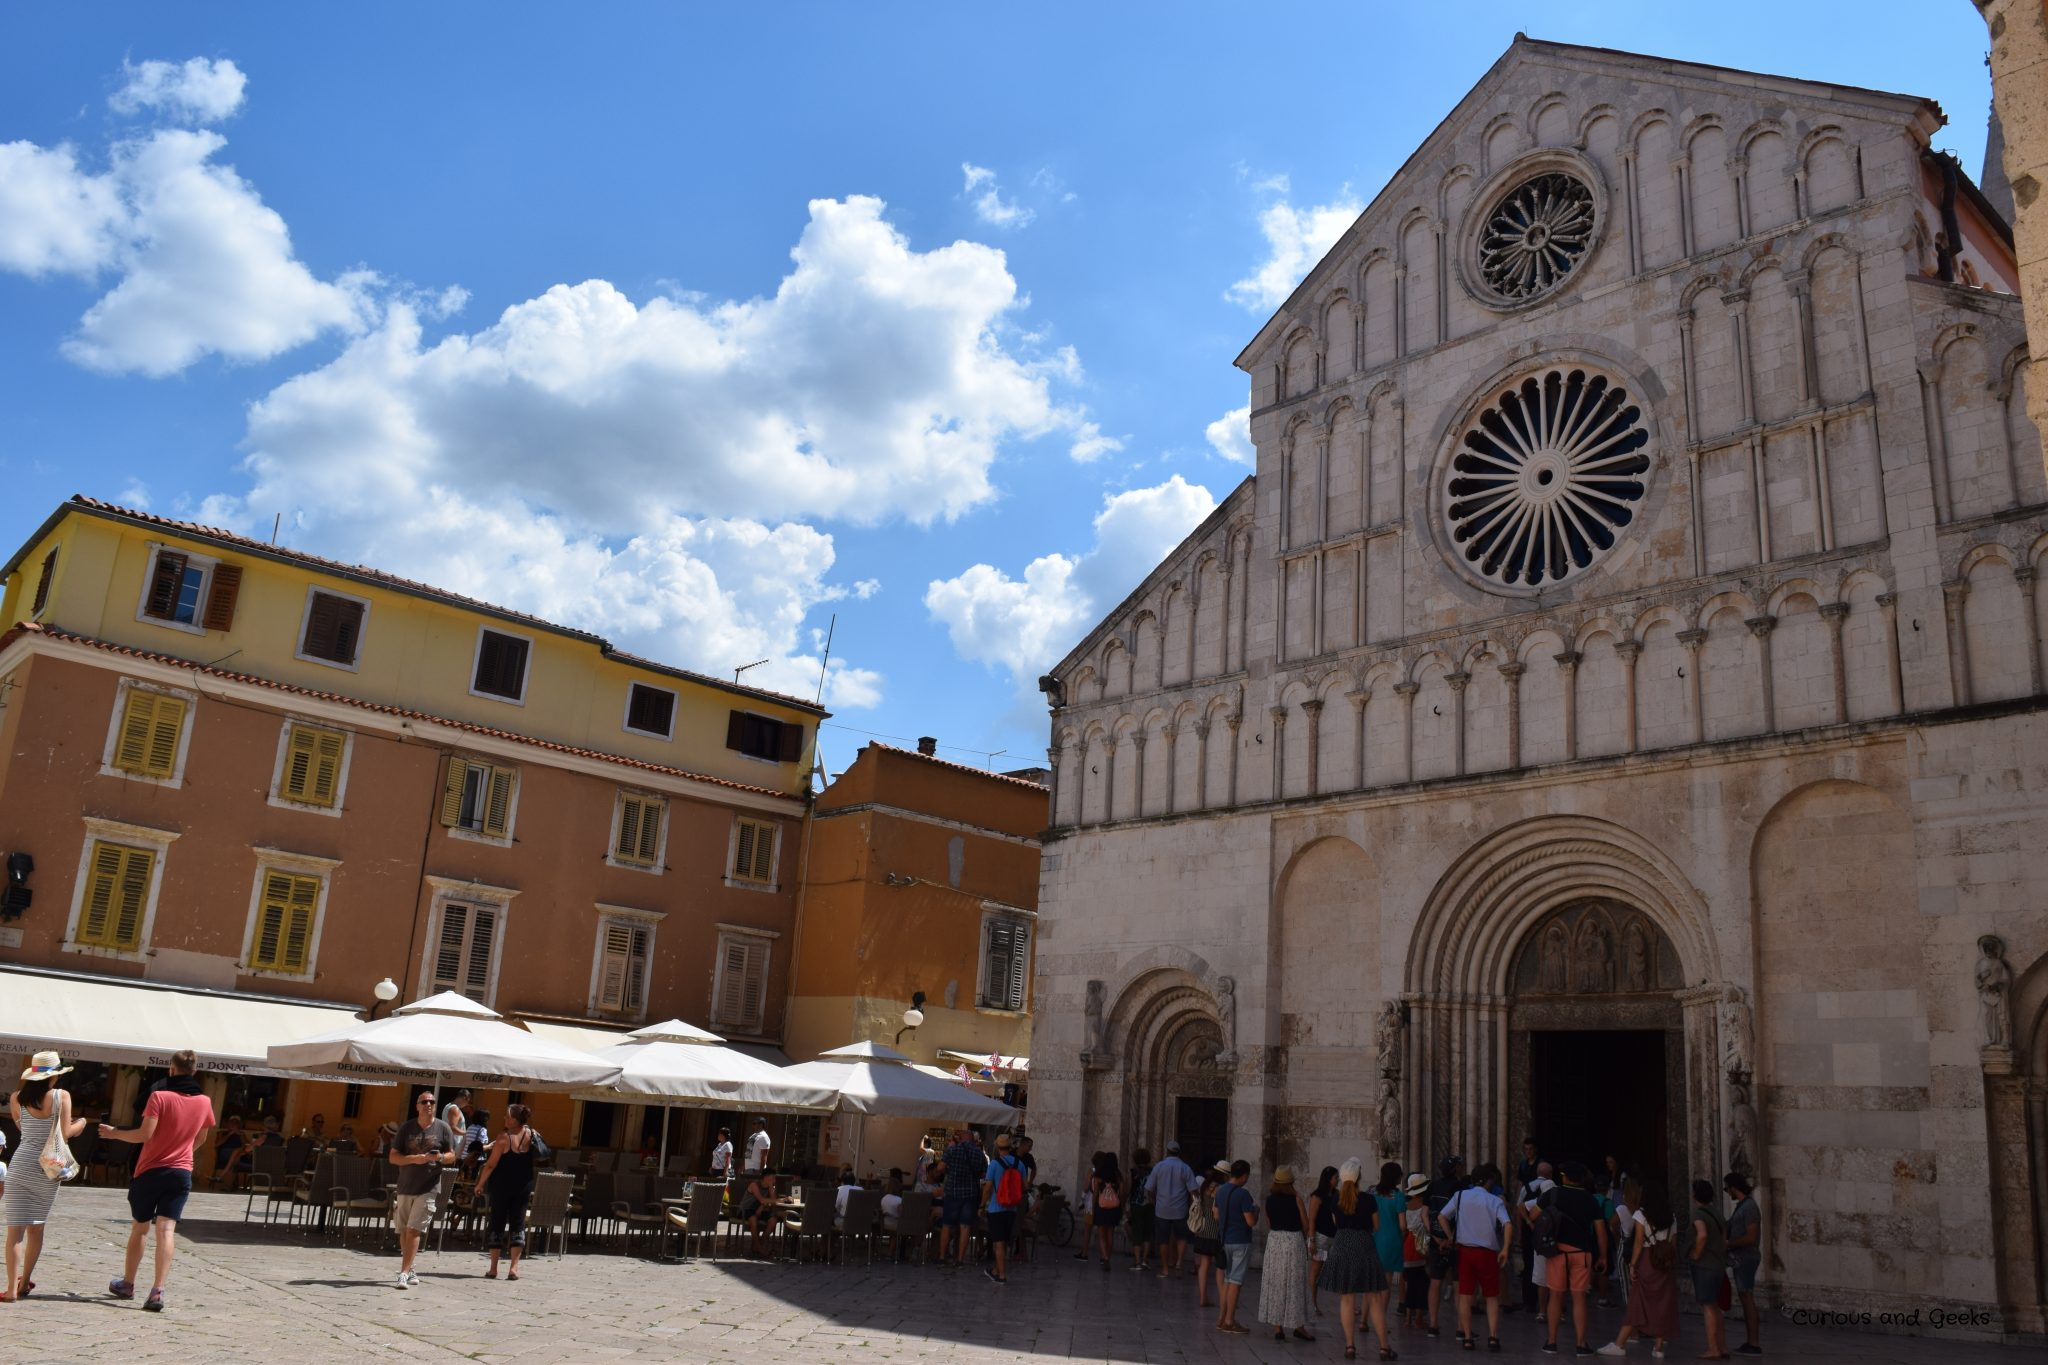 st anastasia´s cathedral - Road trip in Croatia with kids